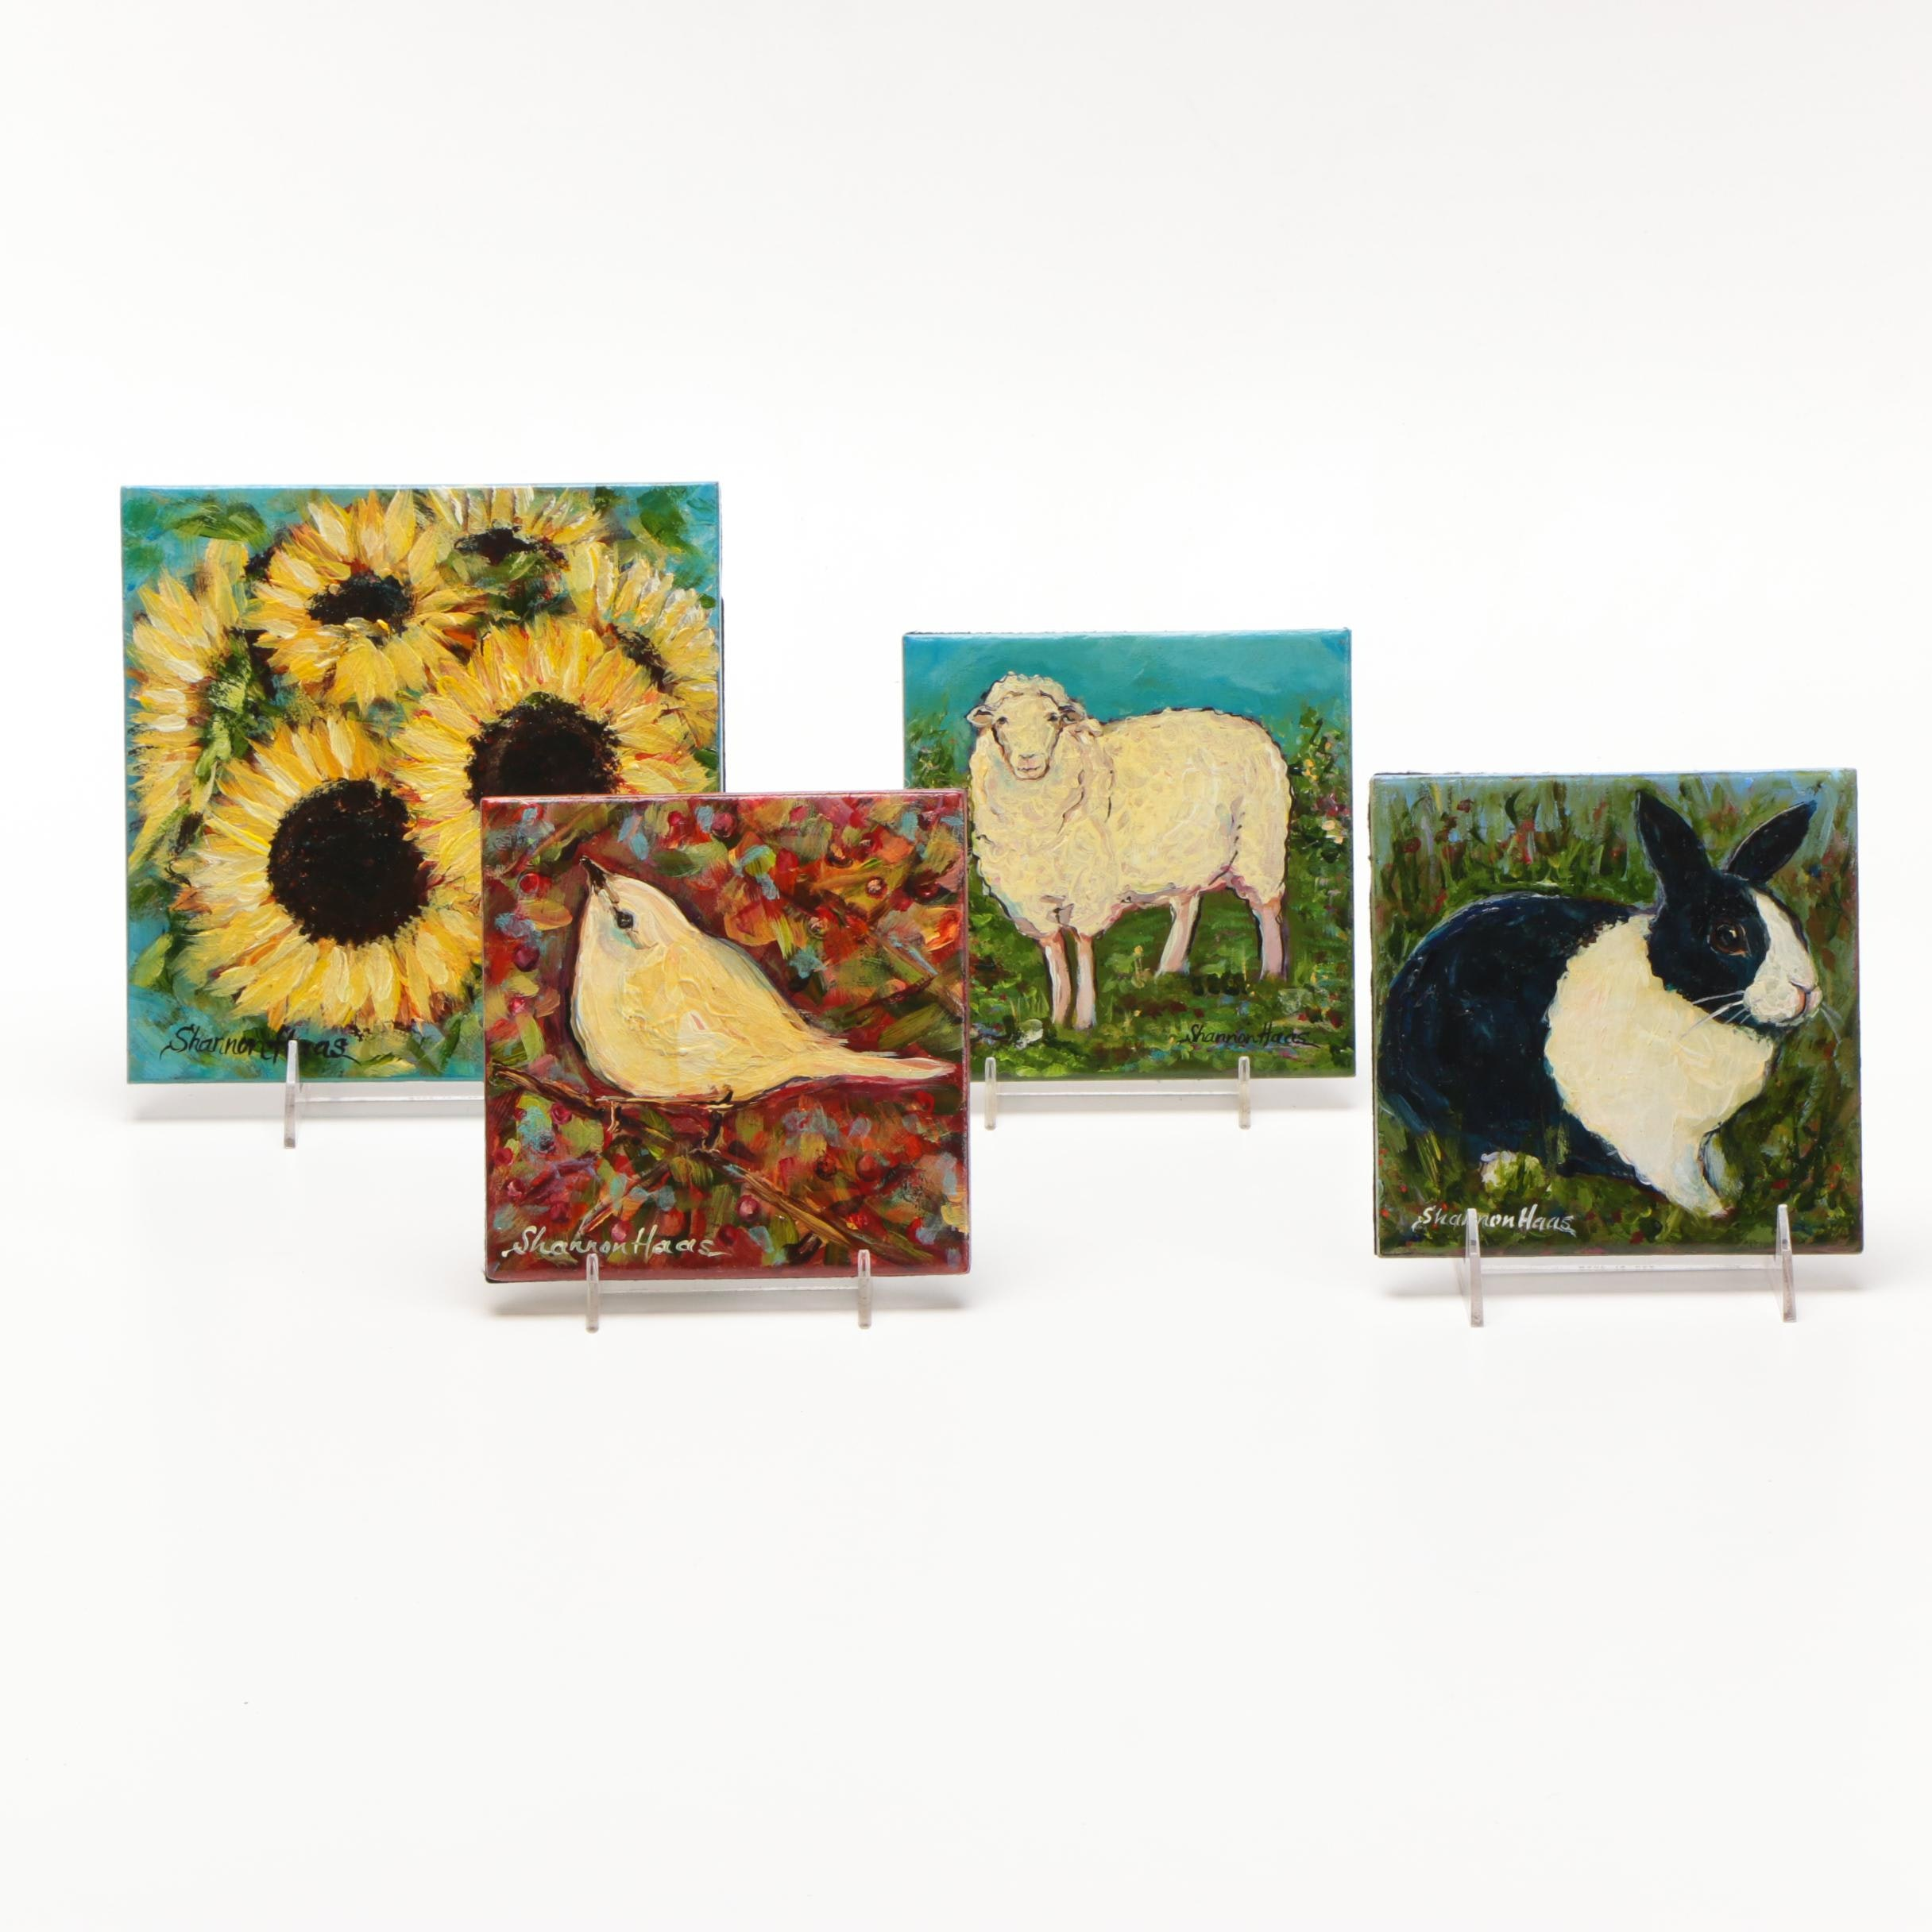 Shannon Haas Paintings on Tile